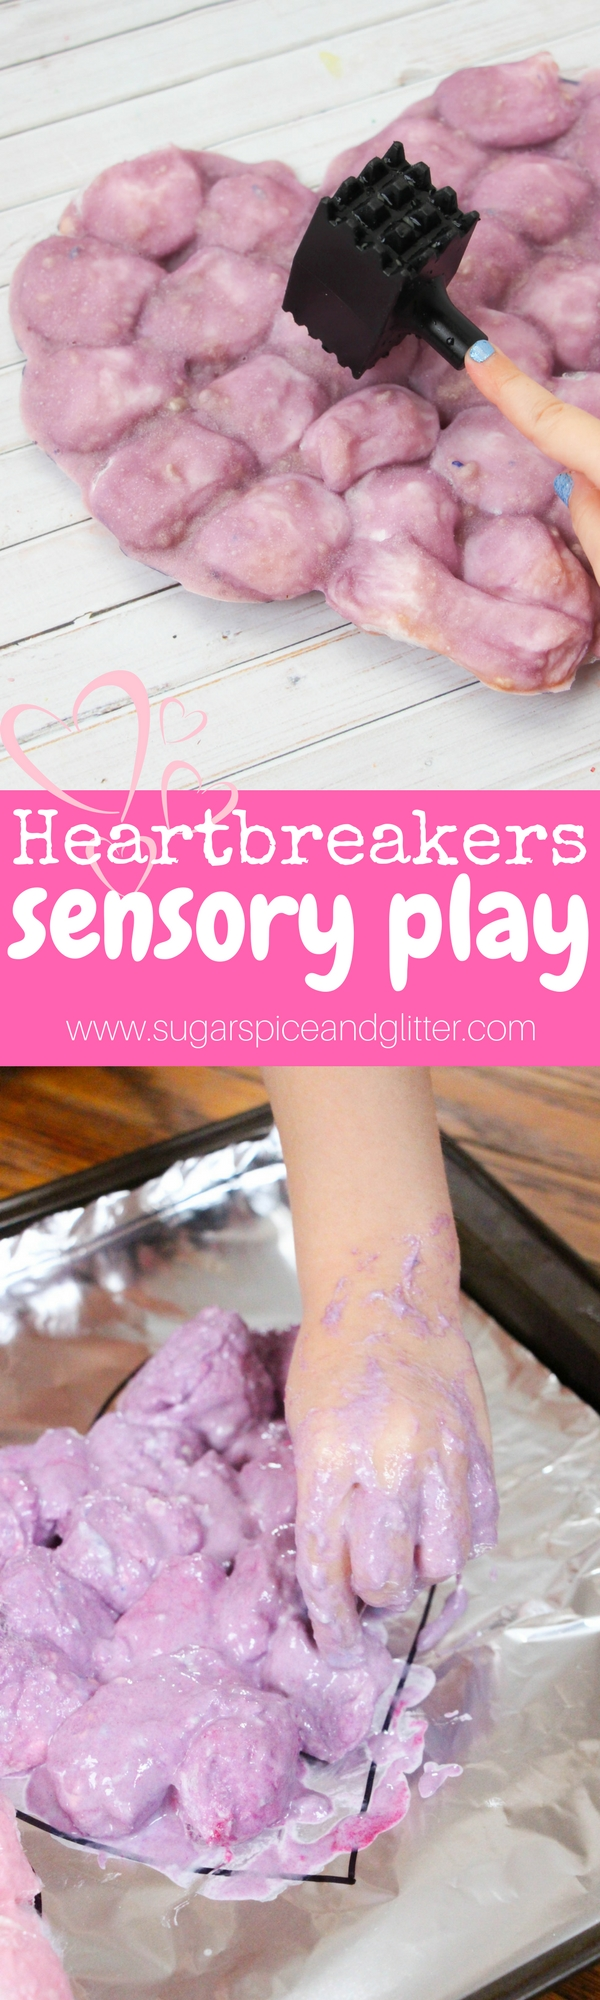 A fun heart-themed sensory play activity for Valentine's Day! Baked cotton balls are so much for for kids to smash and rip apart - especially little heartbreakers!